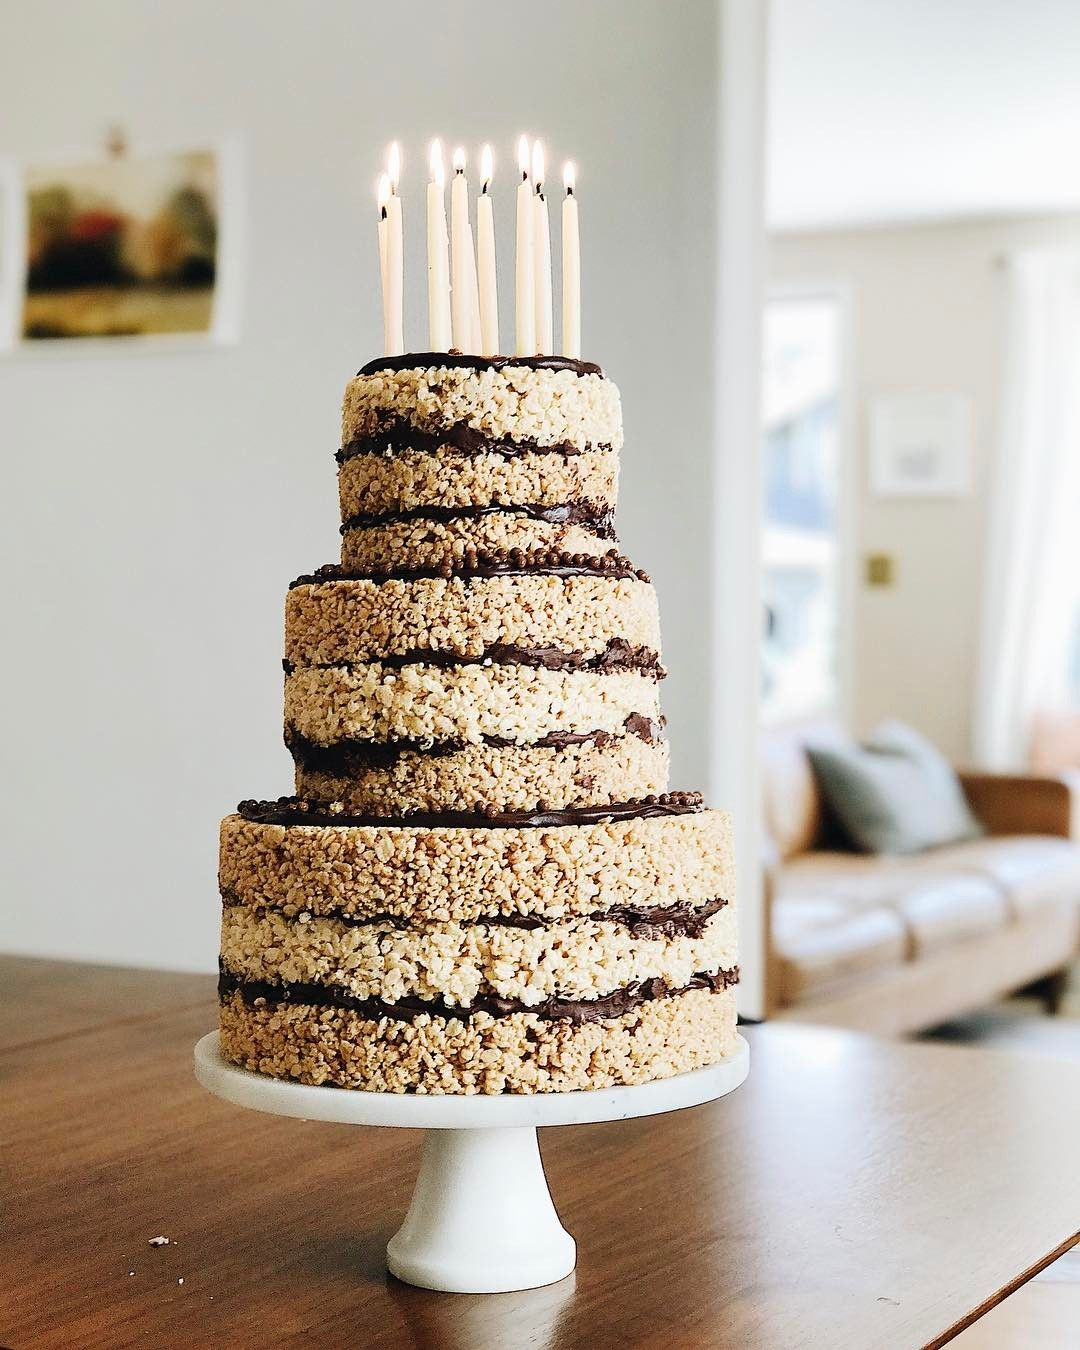 Peanut Butter Chocolate Rice Krispie Cake With Images Rice